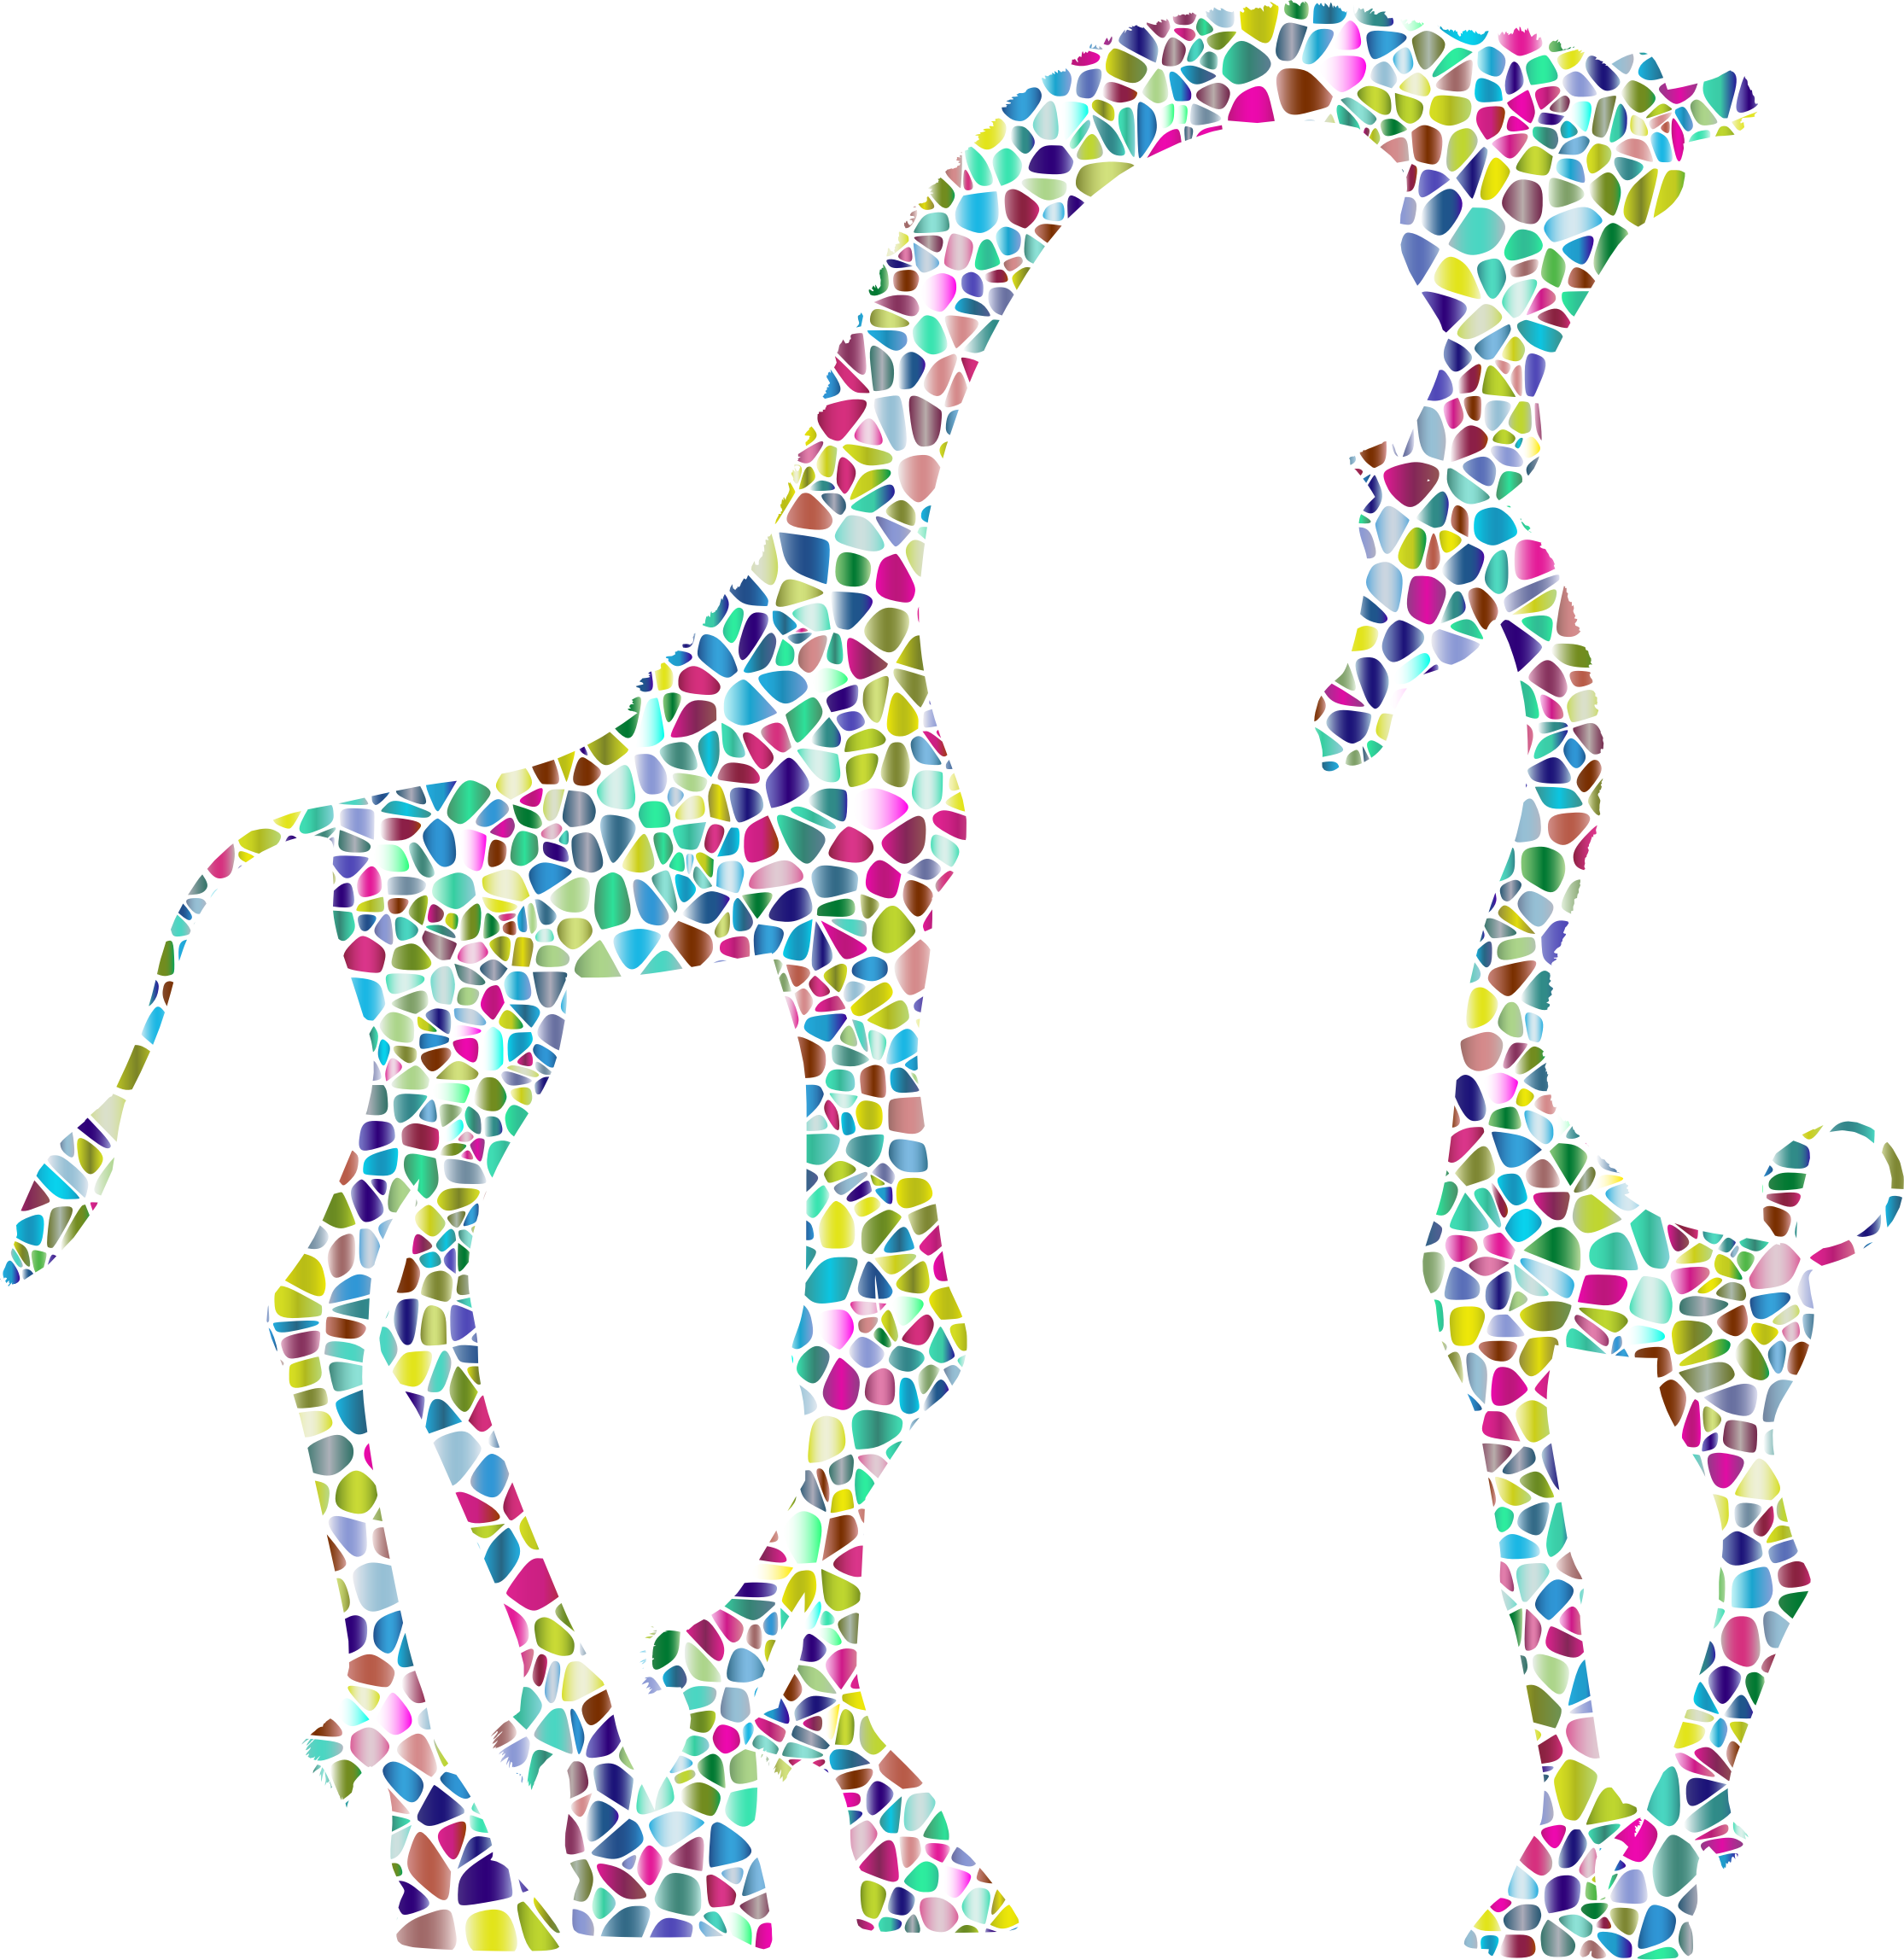 Polyprismatic tiled mother and. Giraffe clipart childrens